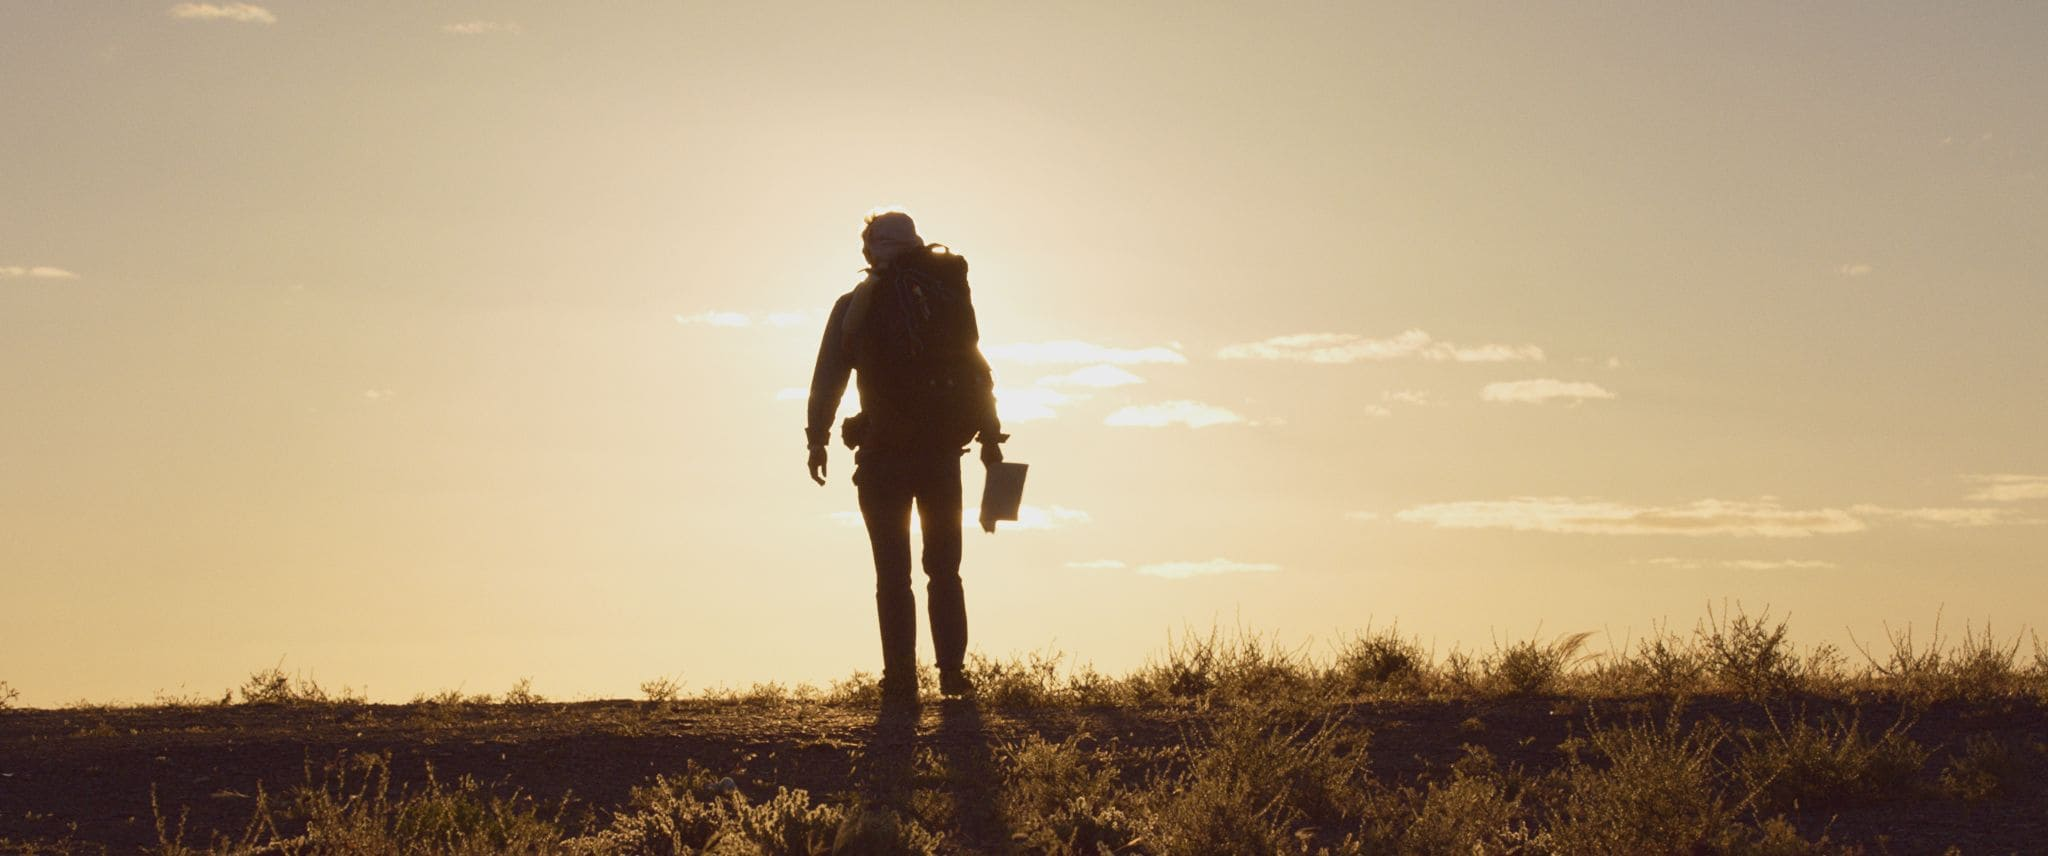 'Cargo' is set in the gorgeous outbacks of Australia (Source: Netflix)